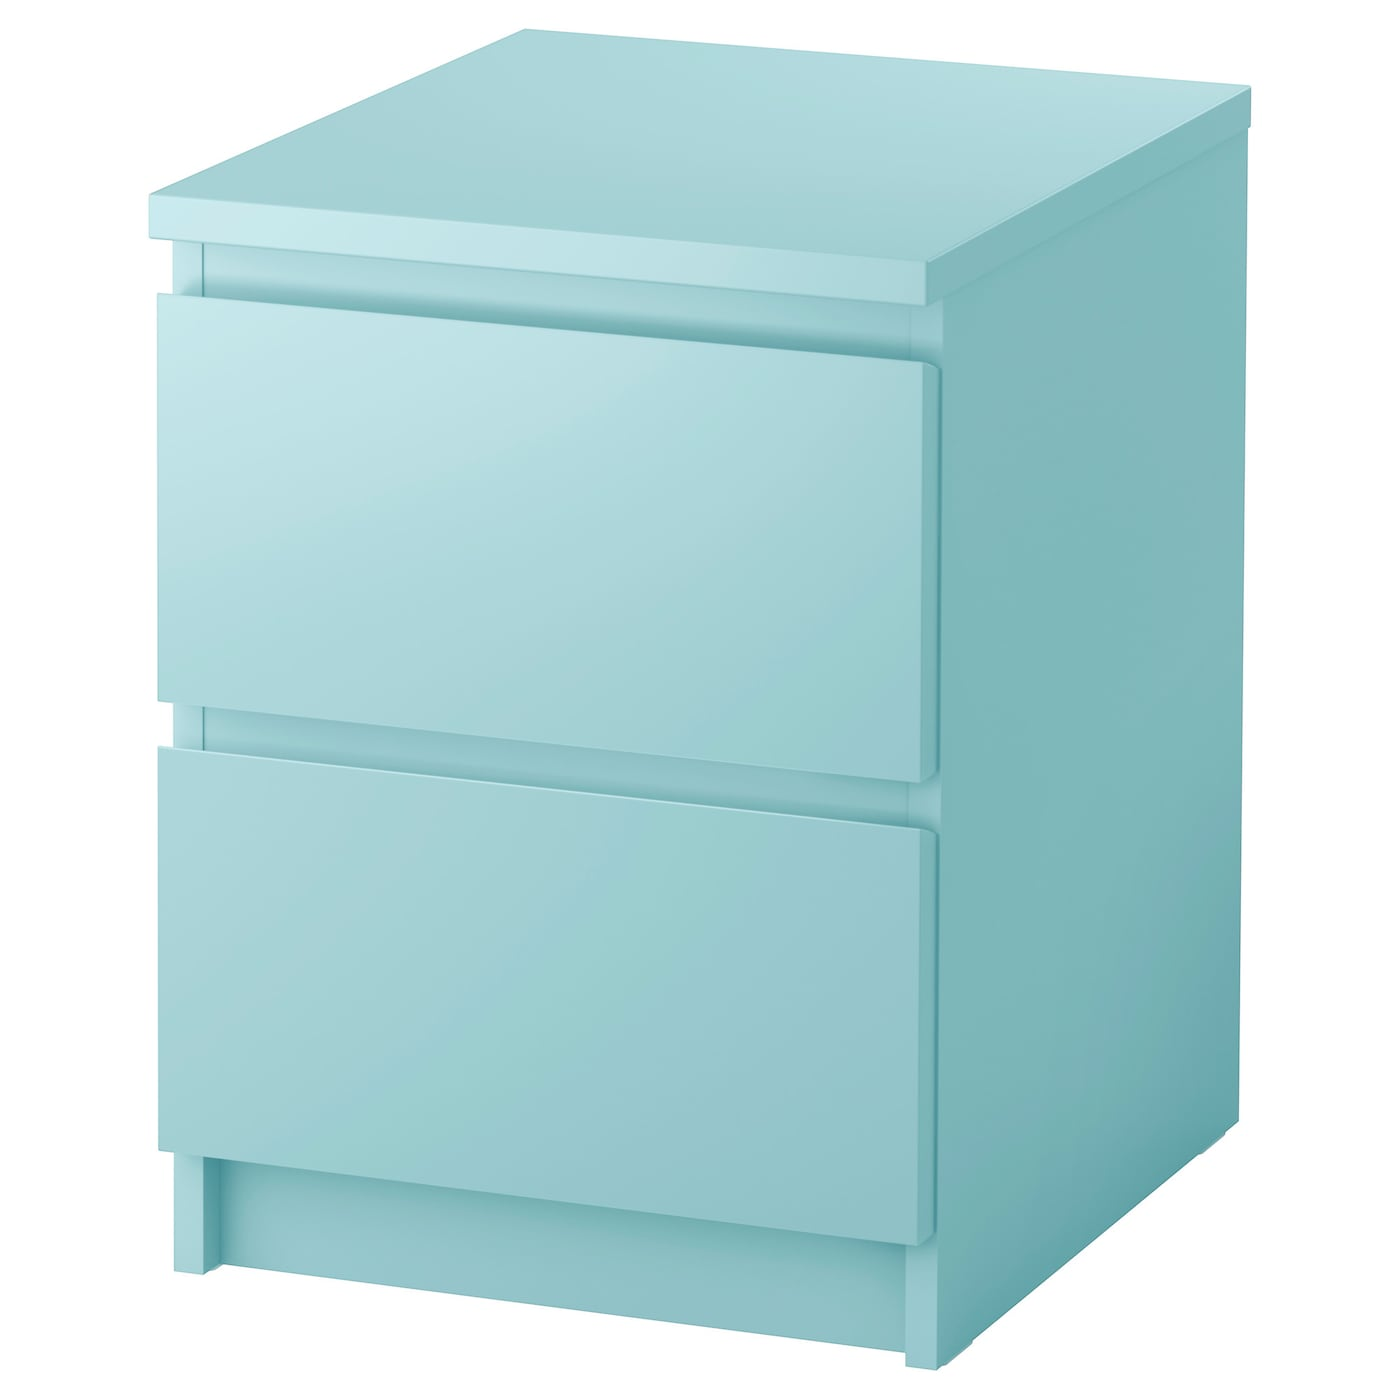 malm chest of 2 drawers light turquoise 40x55 cm ikea. Black Bedroom Furniture Sets. Home Design Ideas